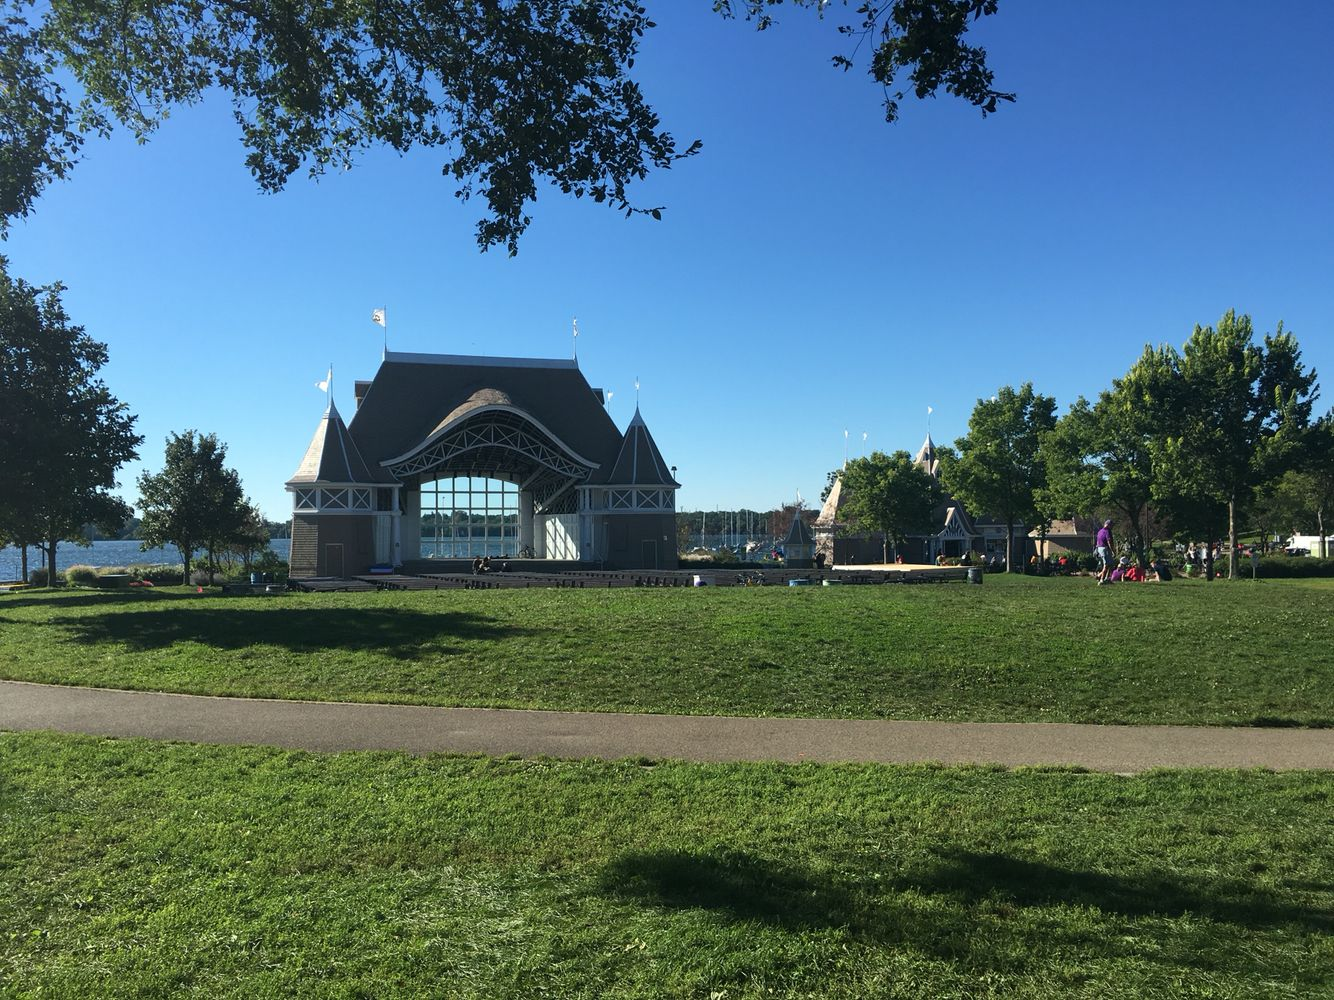 Lake harriet bandshell house styles mansions house